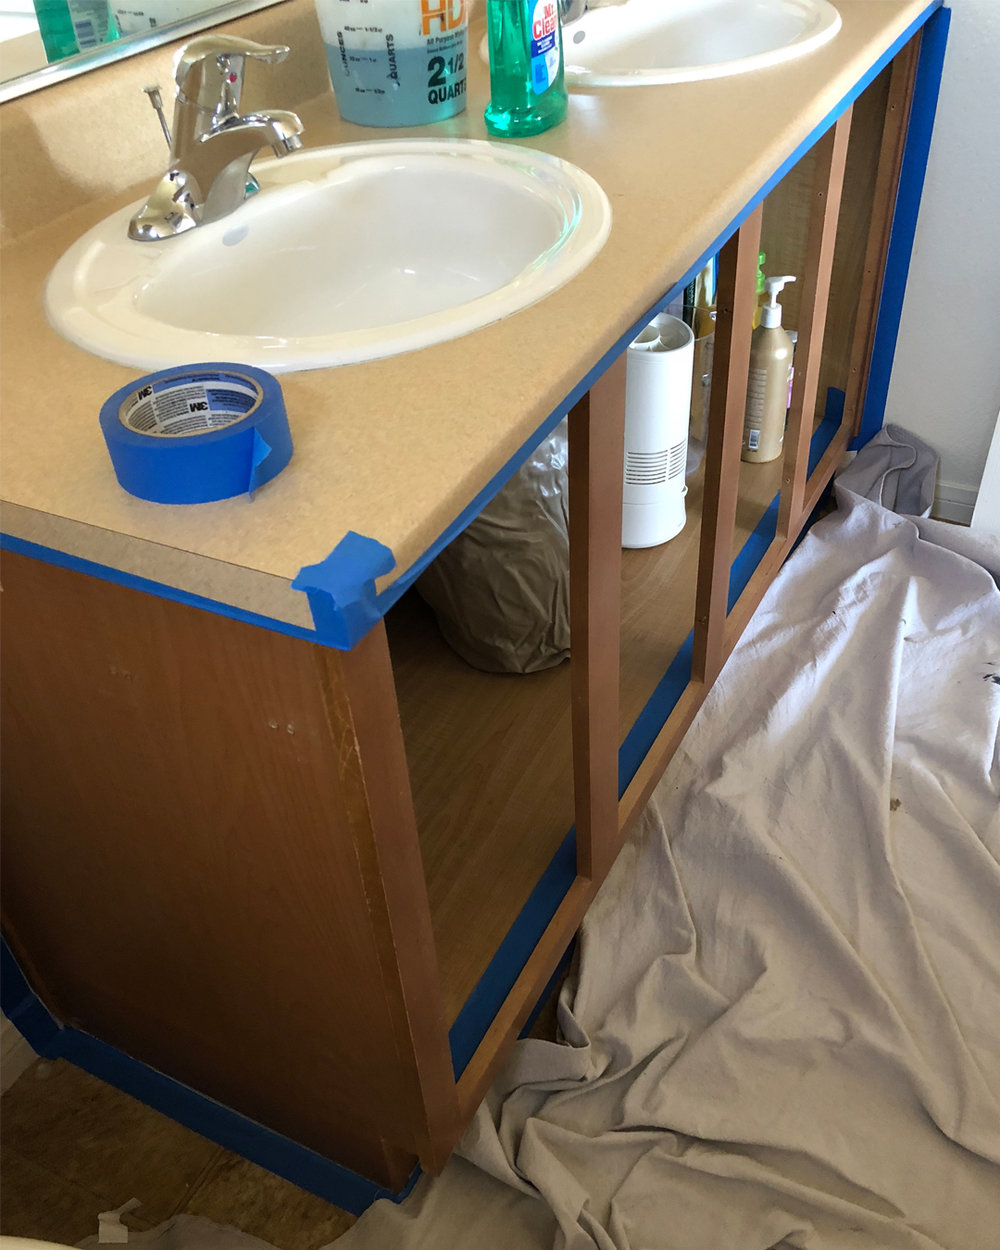 bathroom makeover on a budget, do it yourself home projects, do it yourself affordable home projects, bathroom makeover, BB Frosch, bathroom before and afters, do it yourself bathroom makeover, DIY bathroom makeover, do it yourself bathroom makeover inspiration